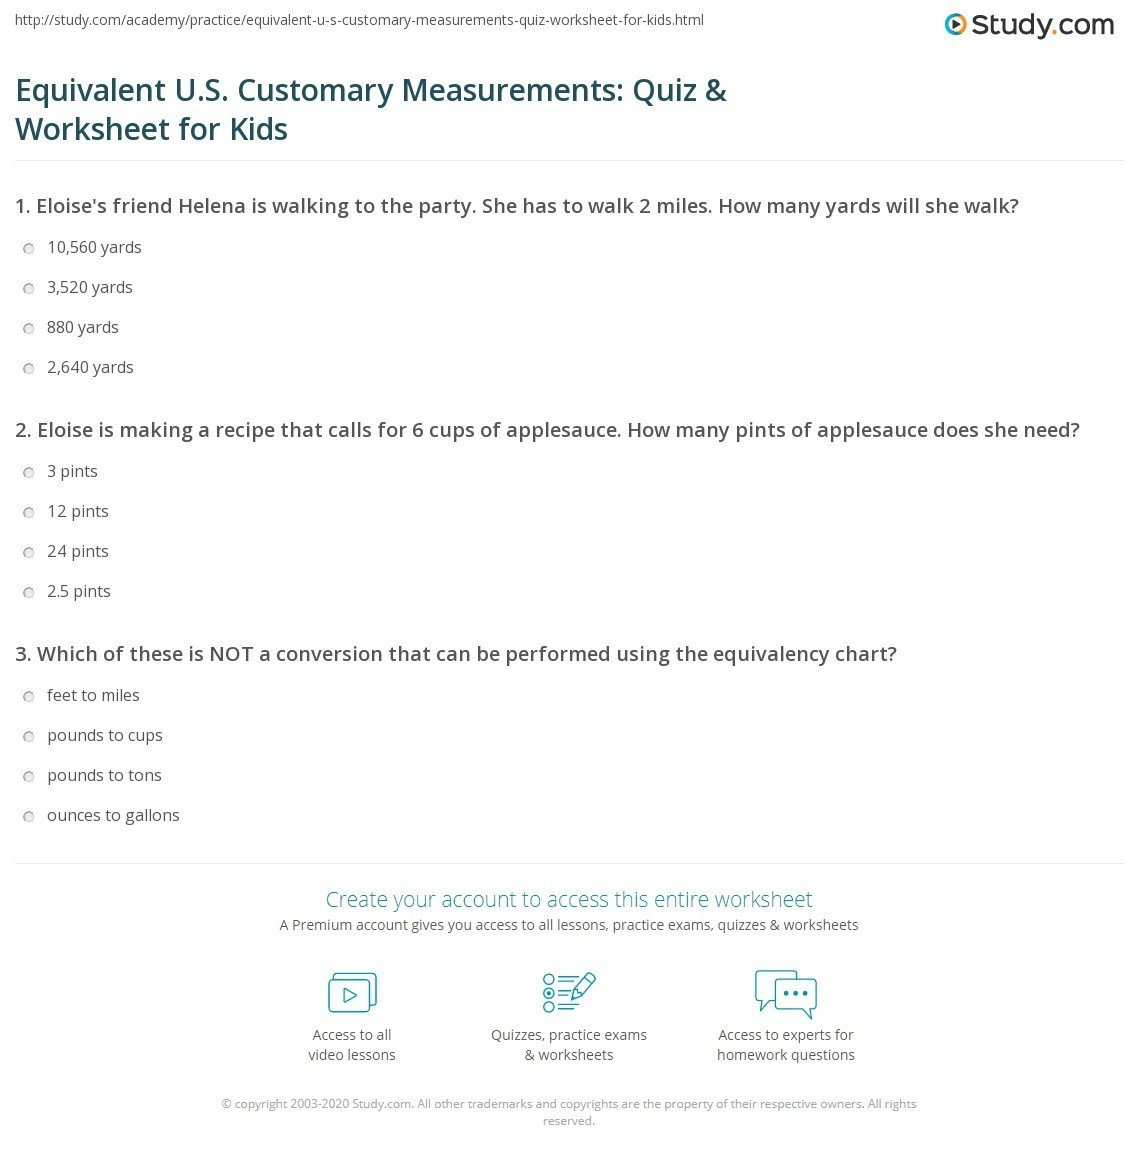 equivalent u s customary measurements quiz worksheet for kids